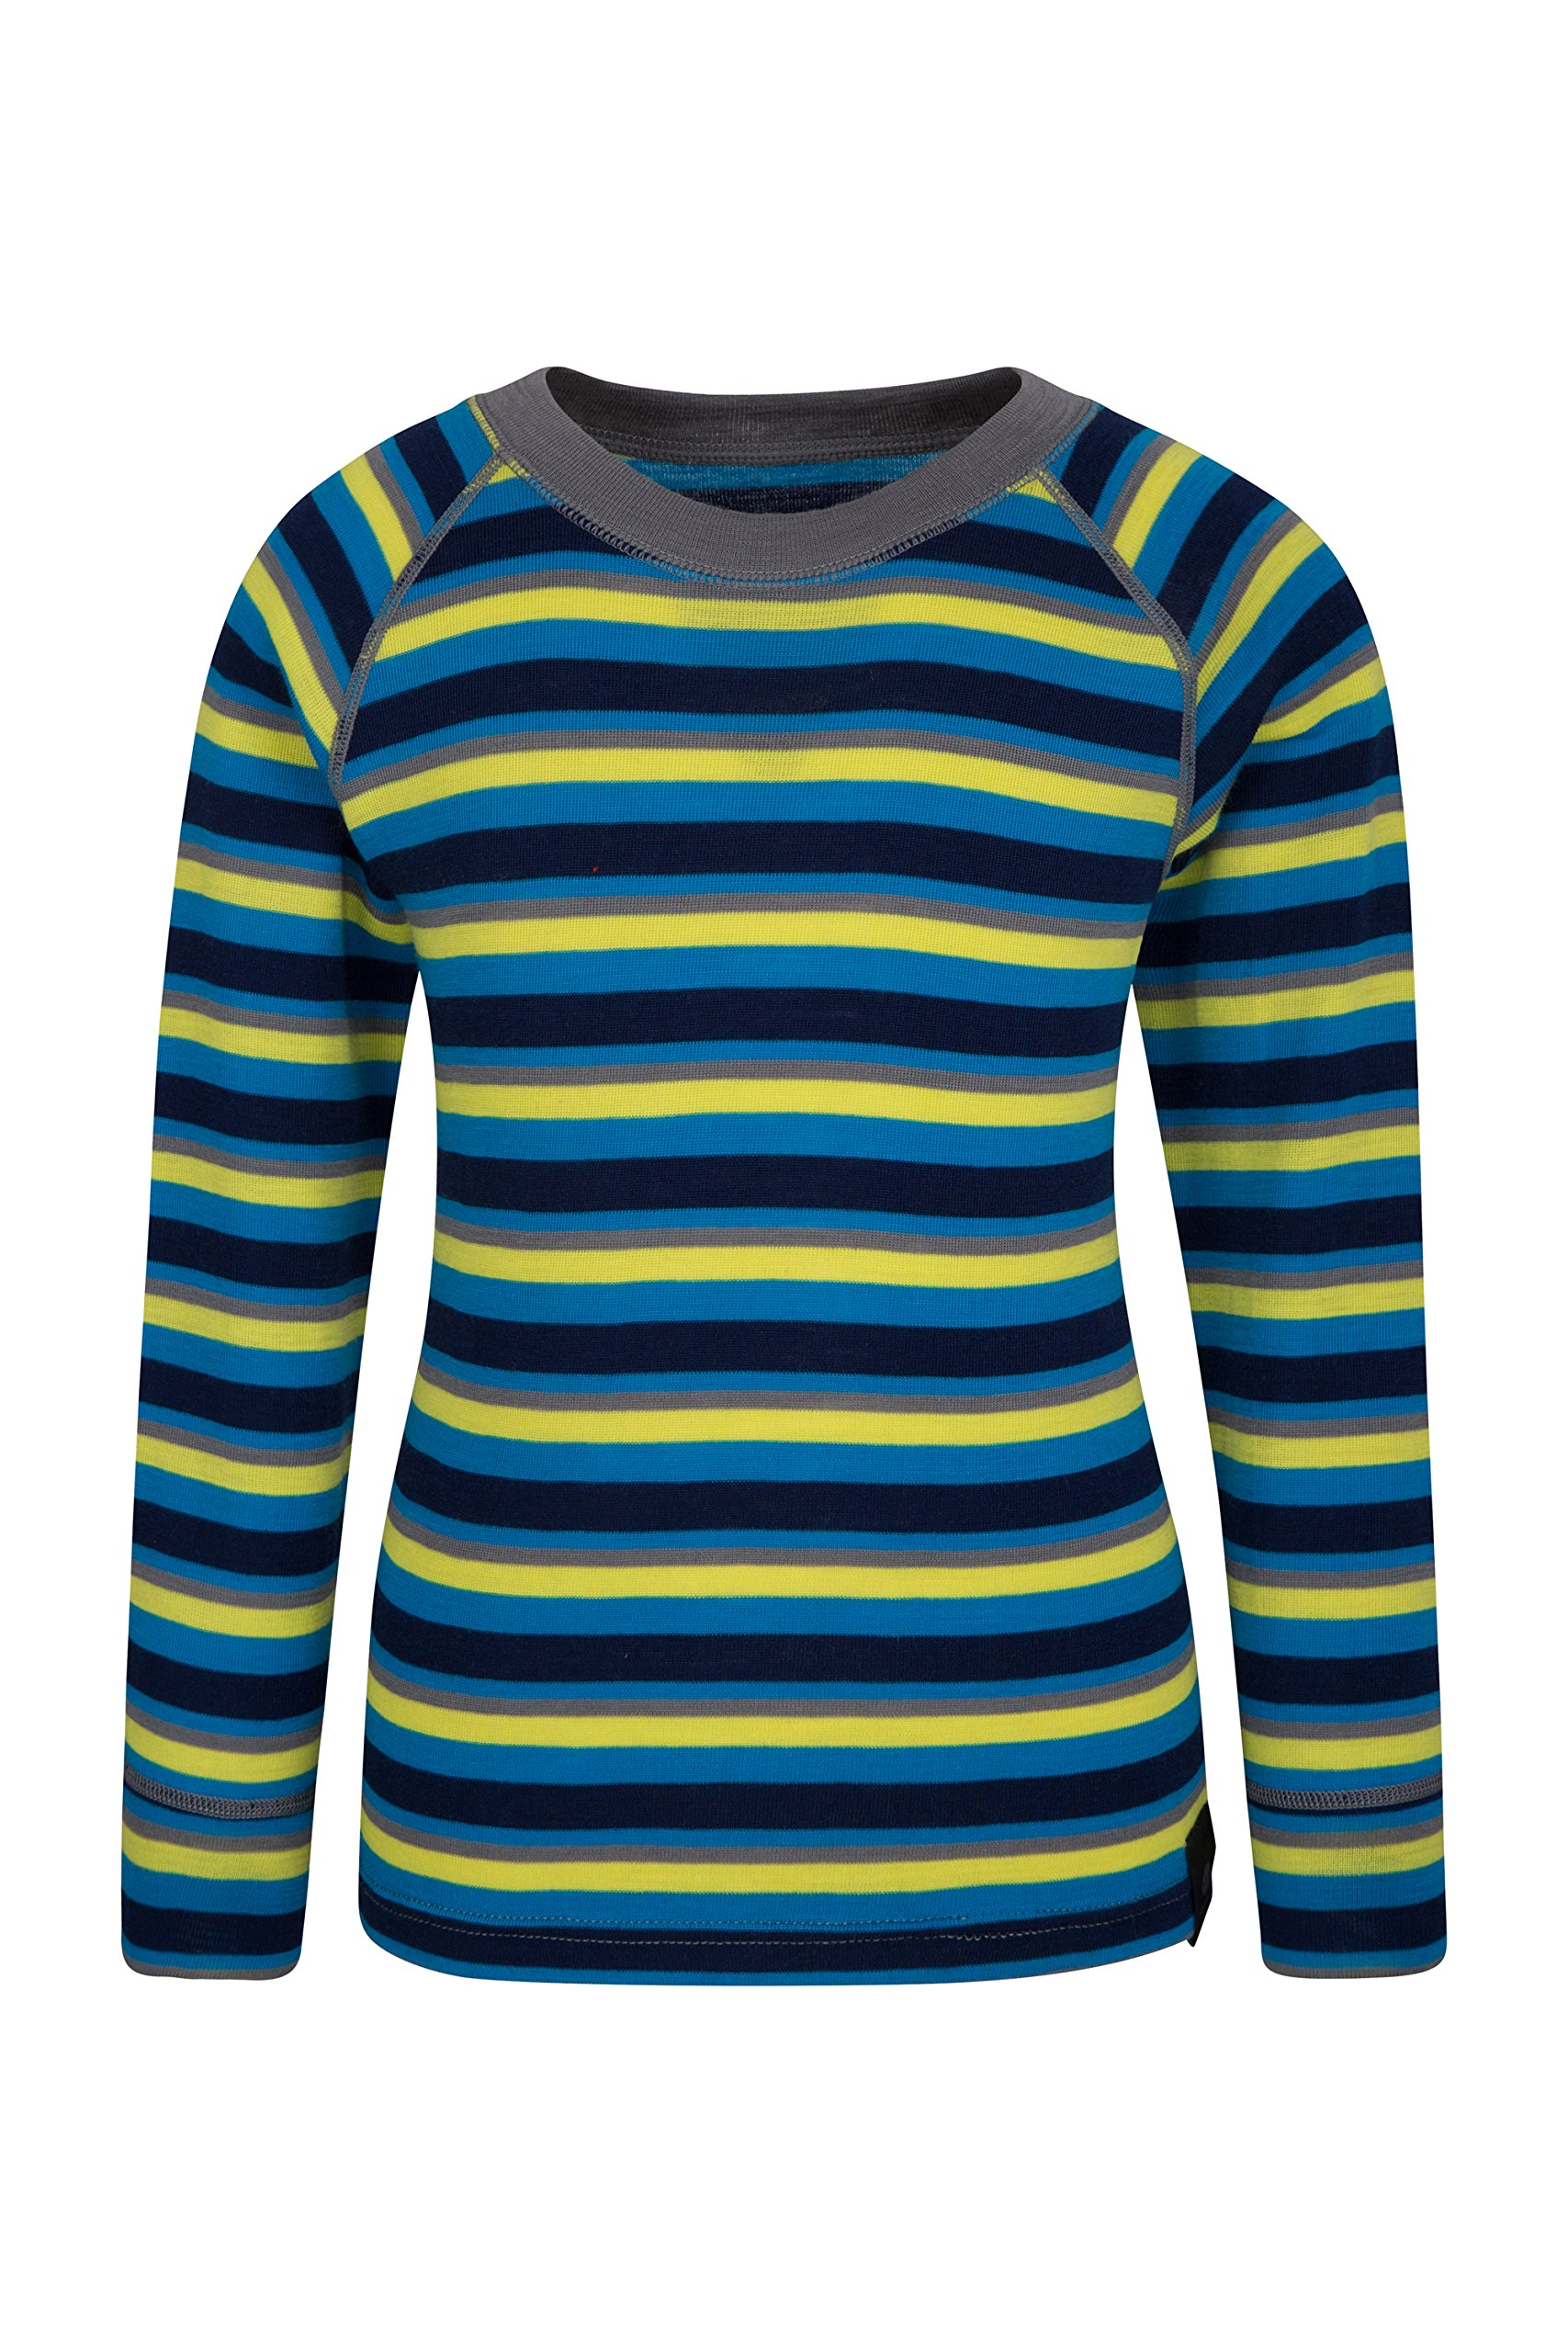 Mountain Warehouse Merino Kids Top- Breathable, Light Childrens Tshirt Blue 5-6 Years